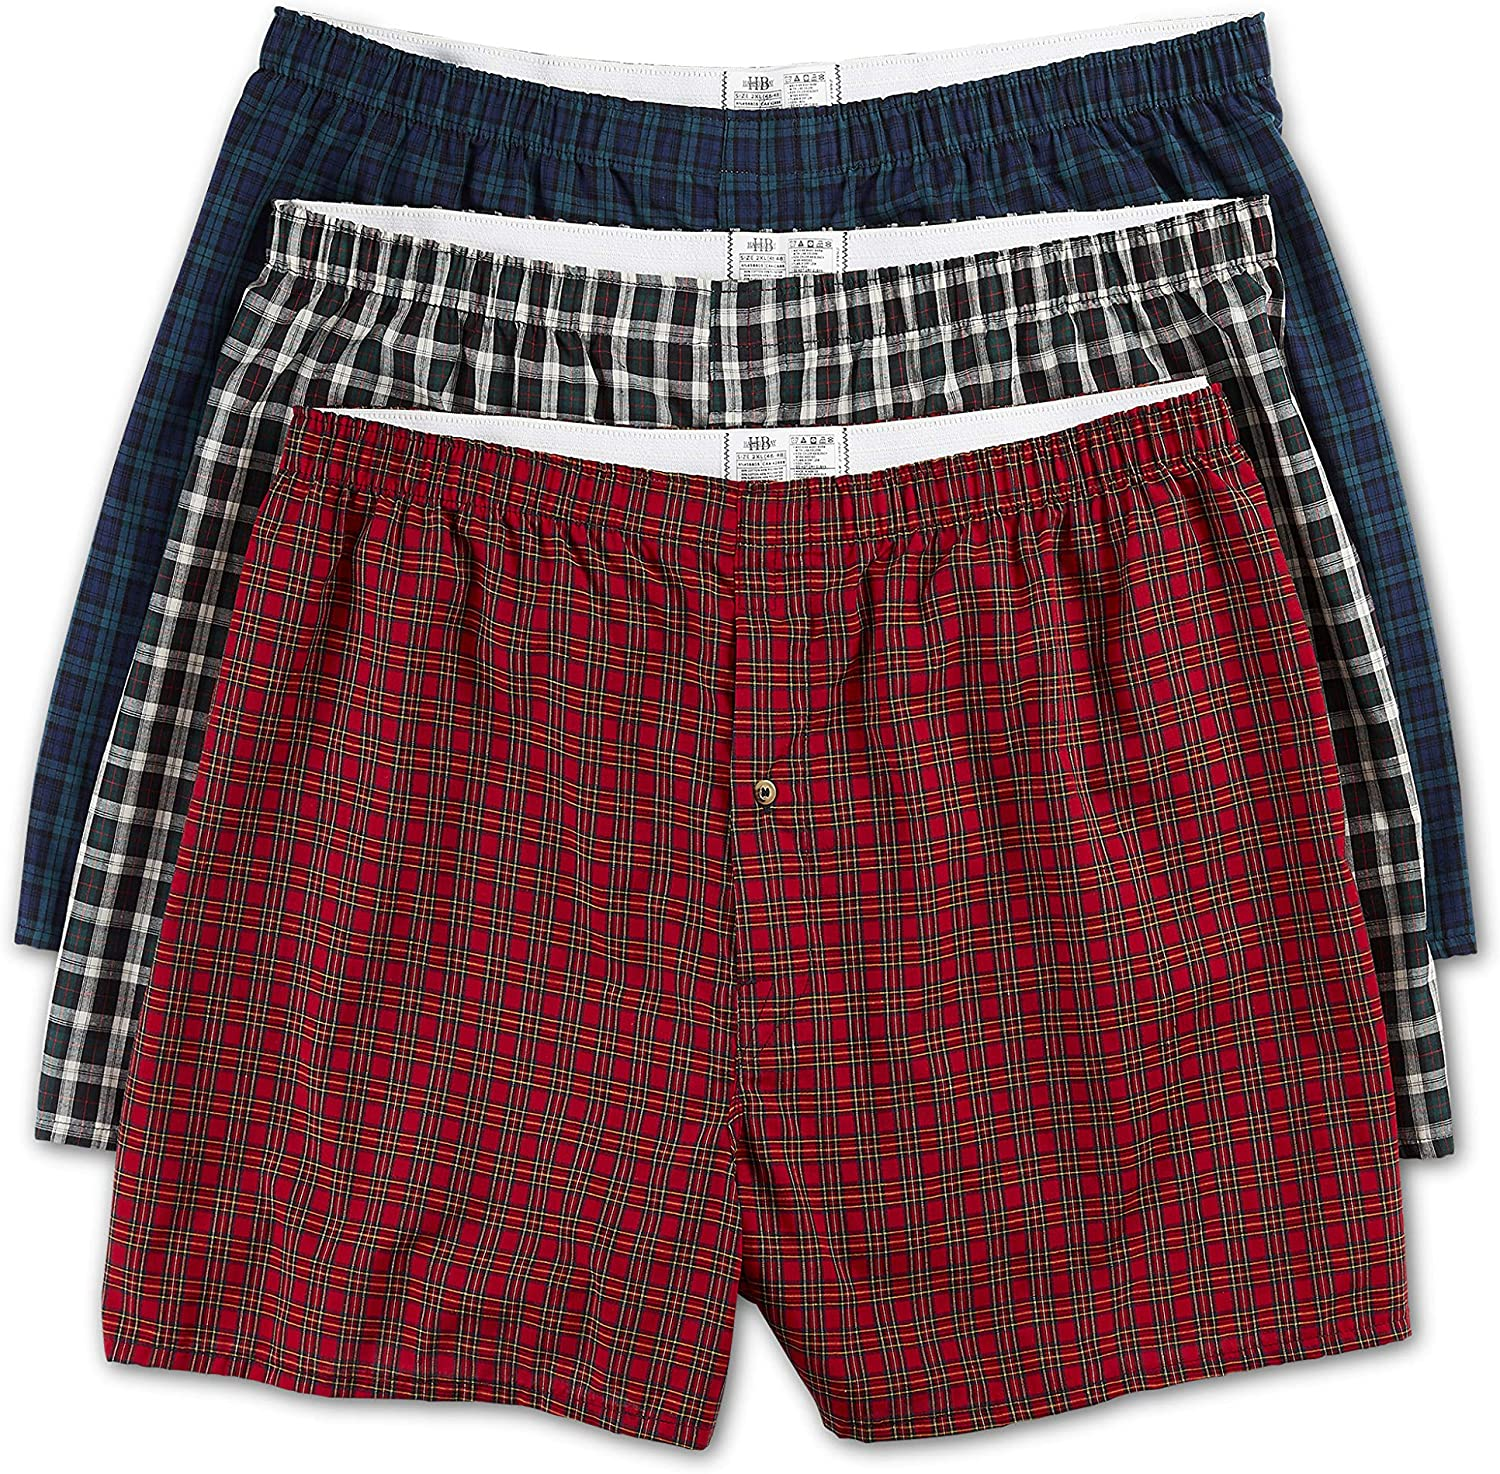 Harbor Bay by DXL Big and Tall 3-Pack Tartan Plaid Woven